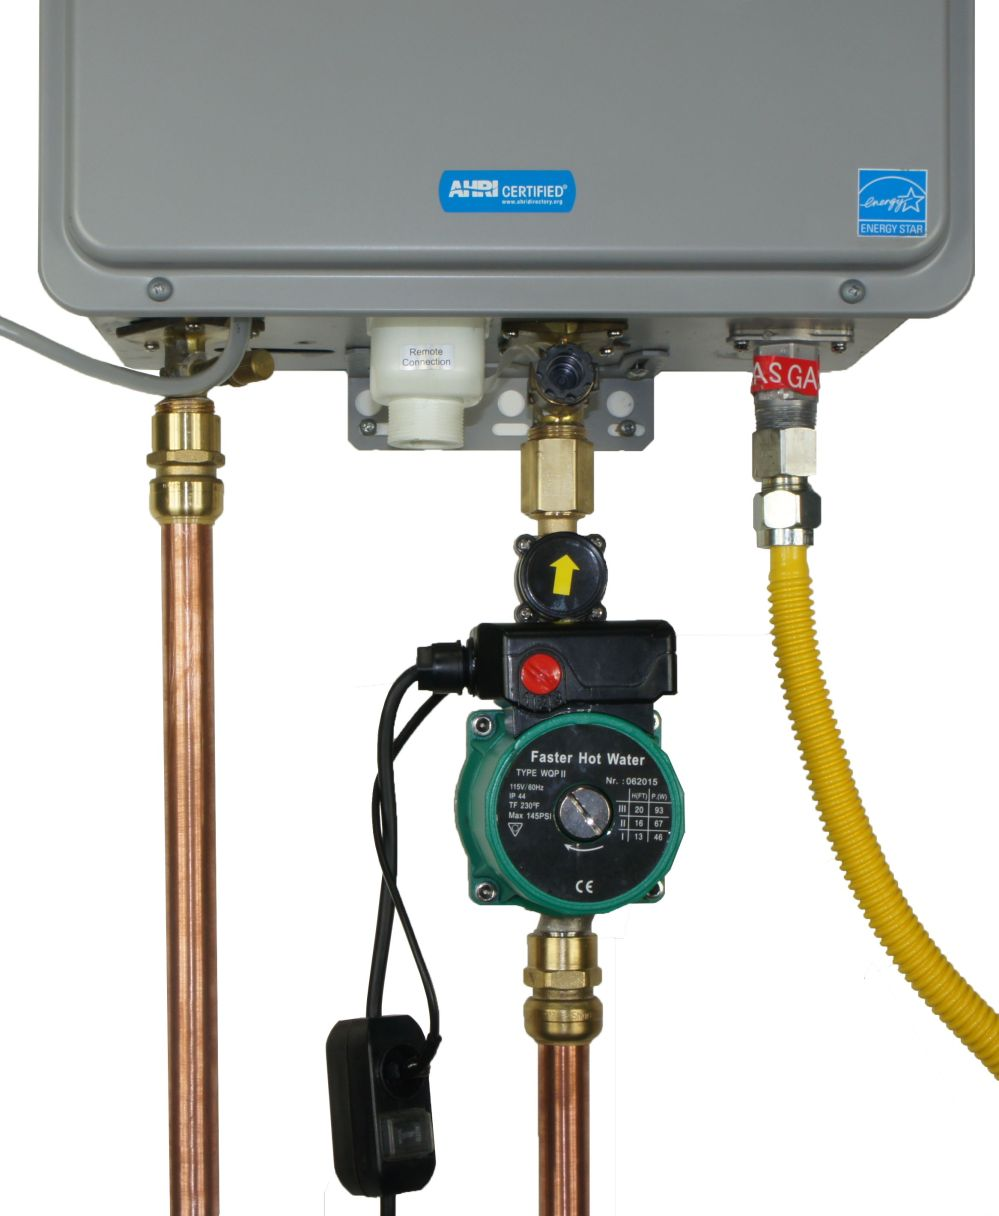 medium resolution of image of a hot water circulator pump installed on a tankless water heater